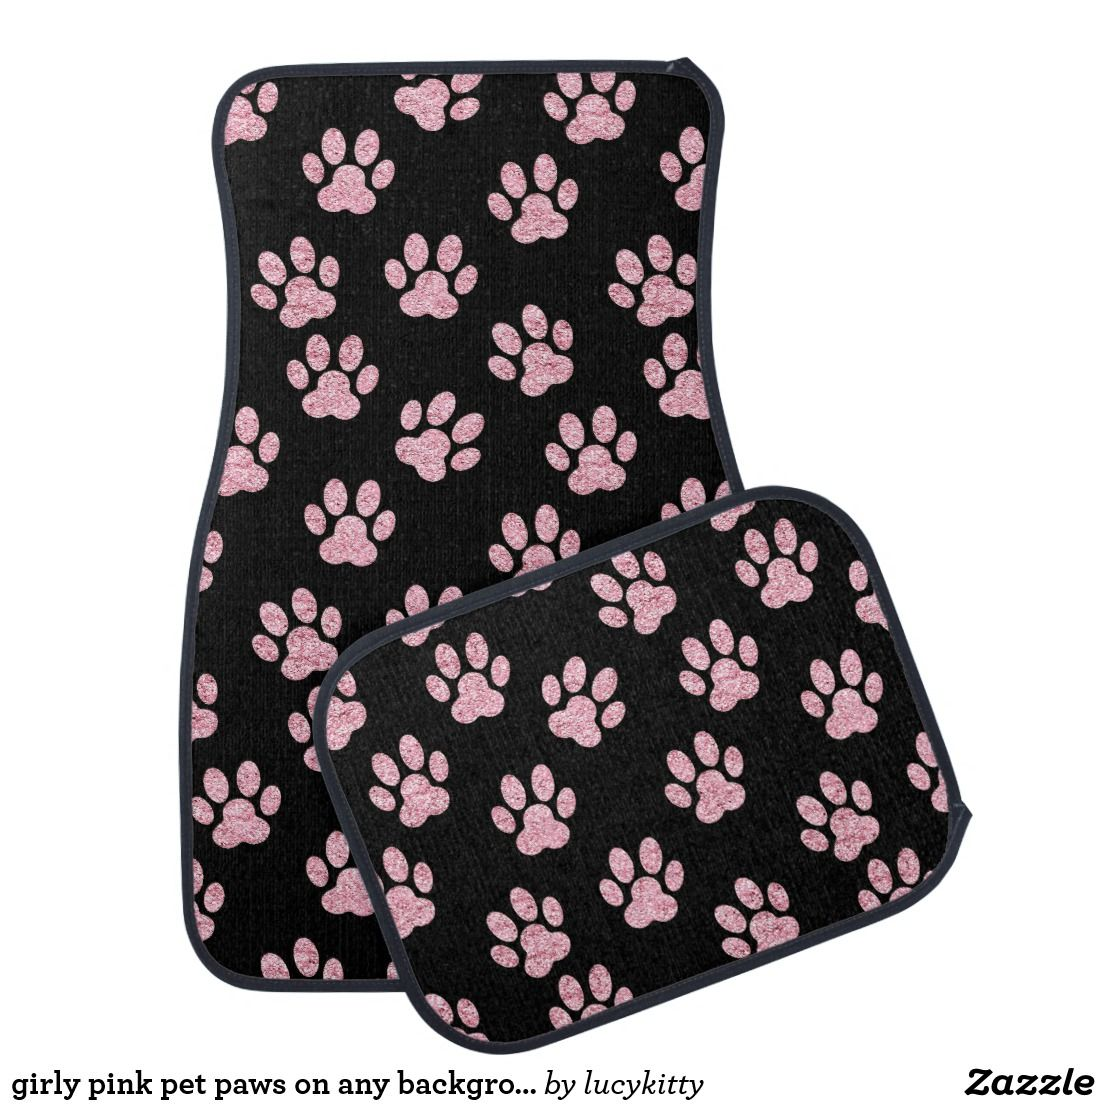 girly car floor mats bling car floor mats girly girly pink pet paws on any background color mat car floor mats